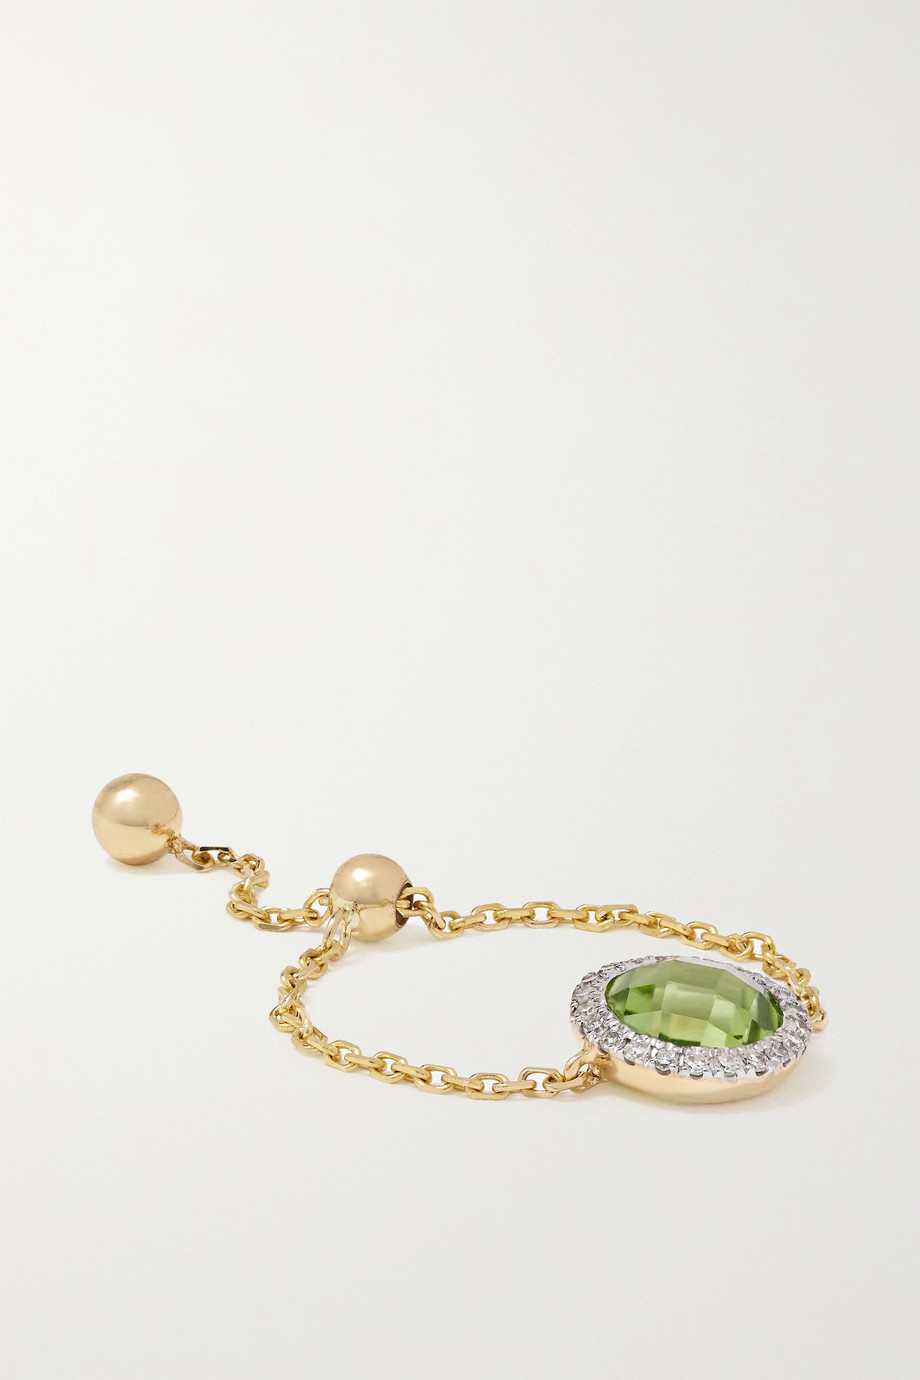 ANISSA KERMICHE 14-karat gold, peridot and diamond ring